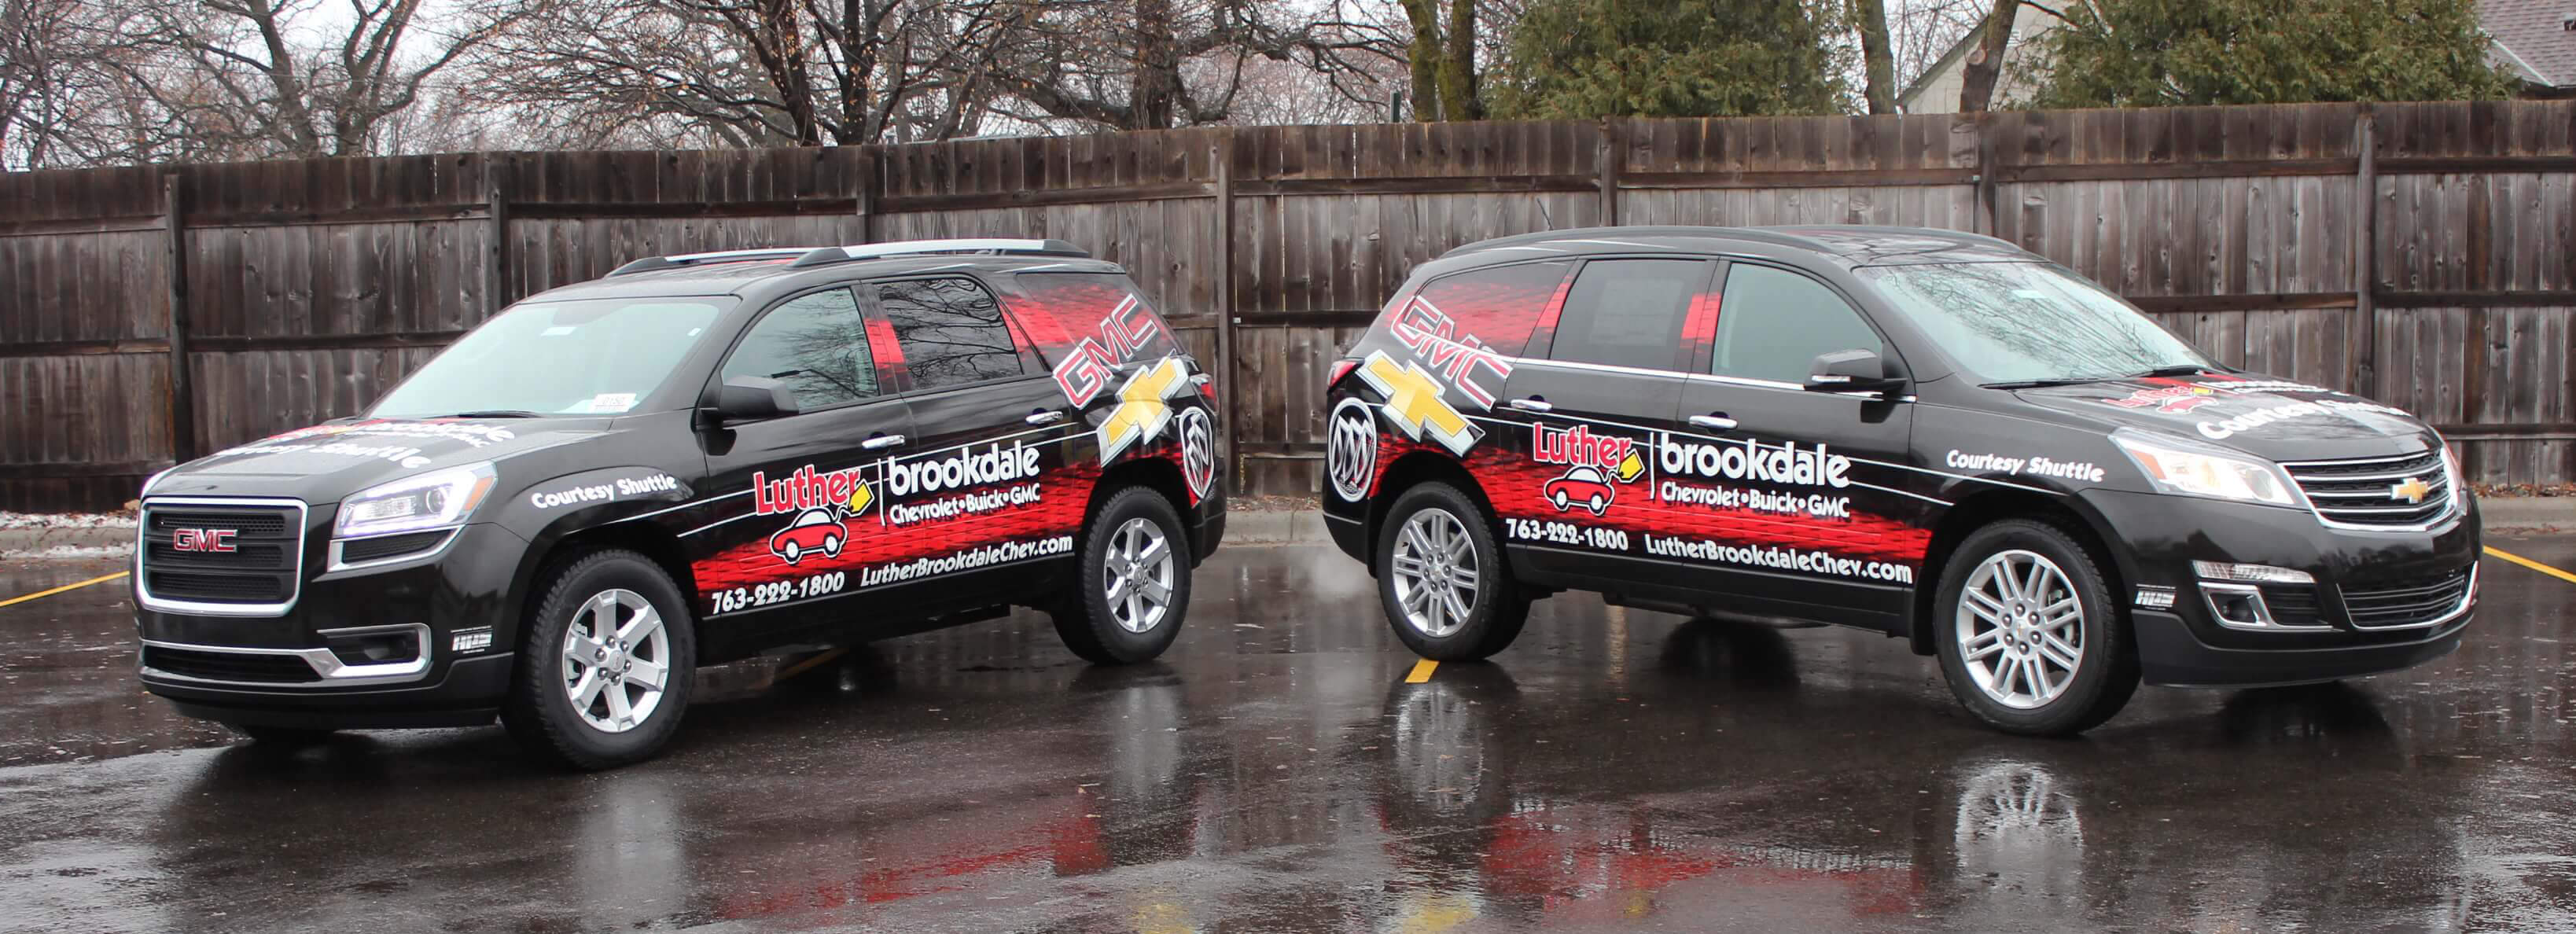 Luther Brookdale Vehicle Vinyl Wrap